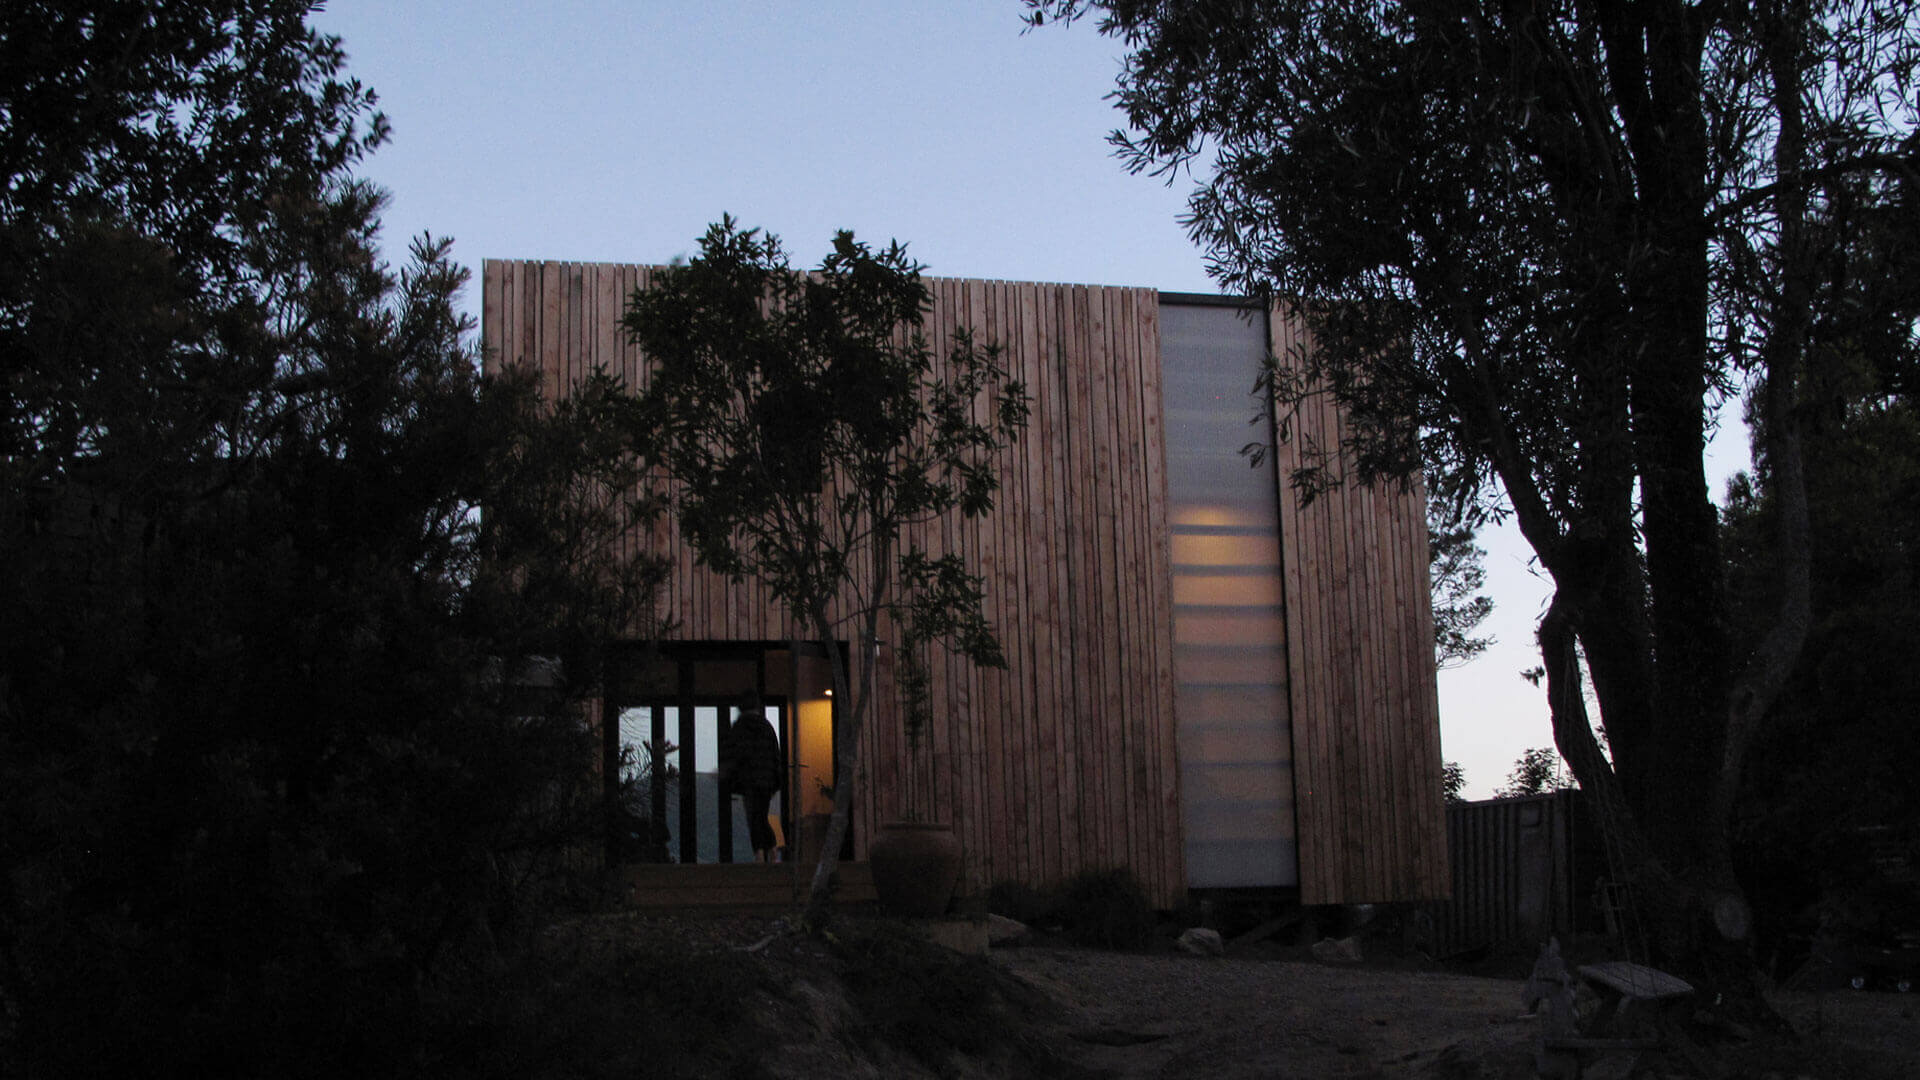 Warrander_Studio_Exterior_Sunset_02_2014_Web